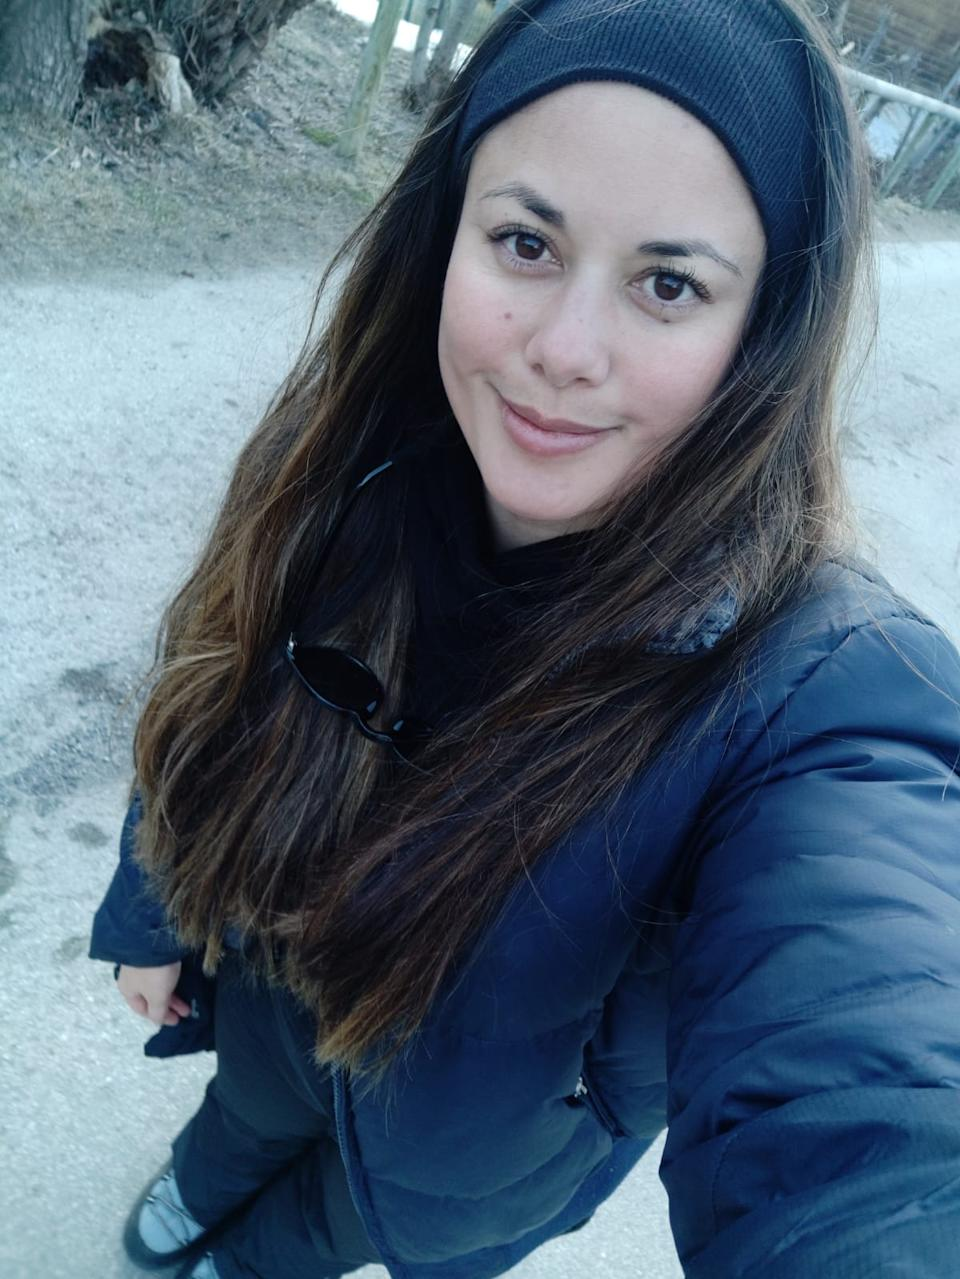 Intan Clement, who contracted coronavirus, takes a selfie on a cold day.